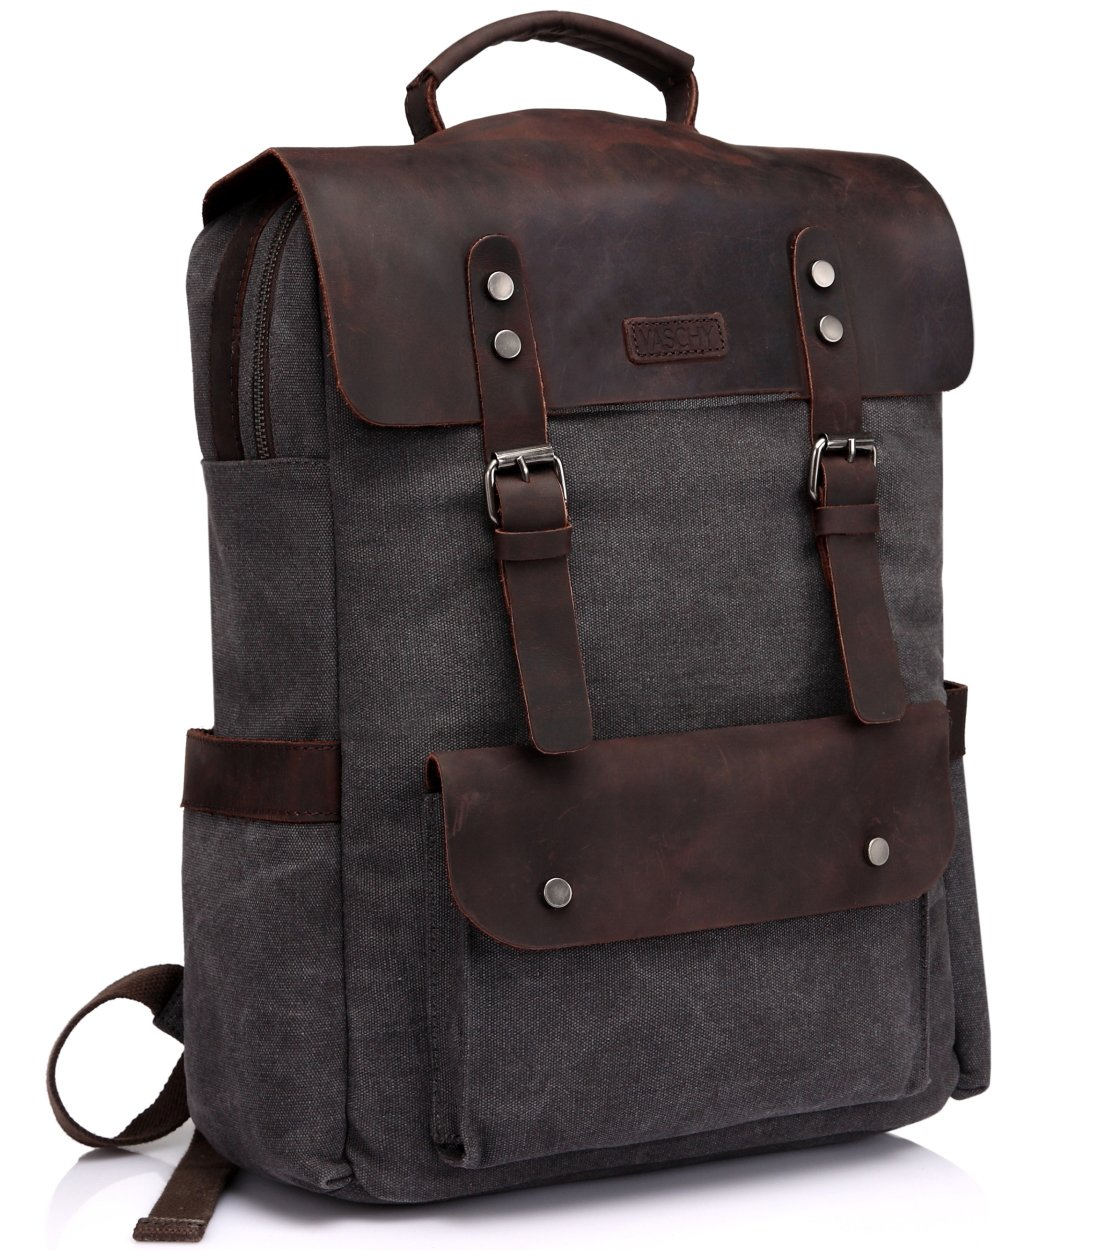 Canvas Laptop Backpack, VASCHY Vintage Waxed Canvas Anti-Theft Backpack for Men Fits 15.6inch Laptop Gray VABP053GA